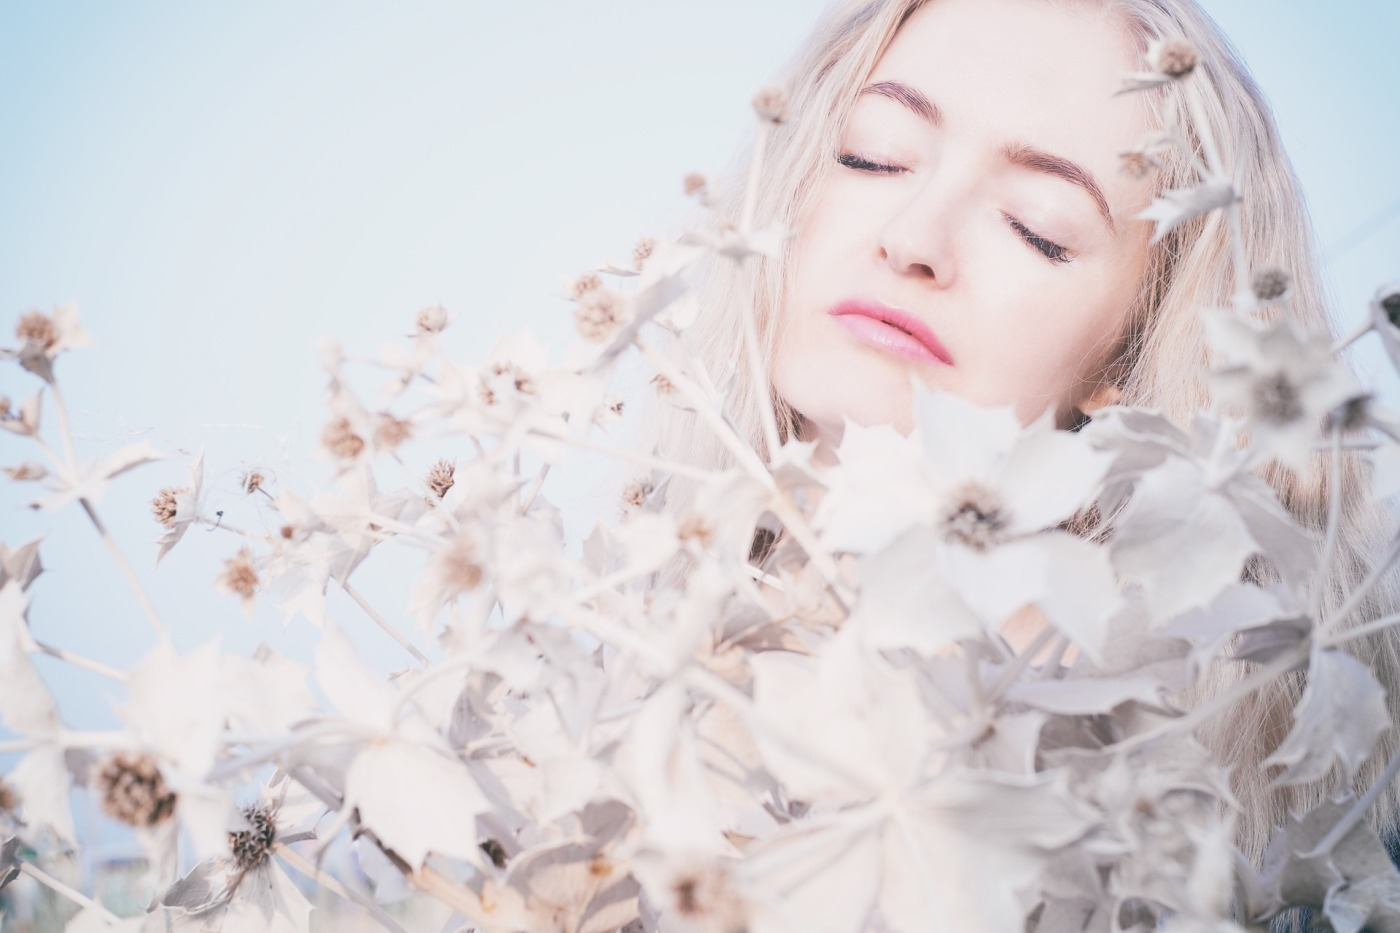 procrastinate, procrastinator, ADHD, anxiety, white flowers, woman flowers, peaceful, perfect, blog, marriage of oppositions, paradox